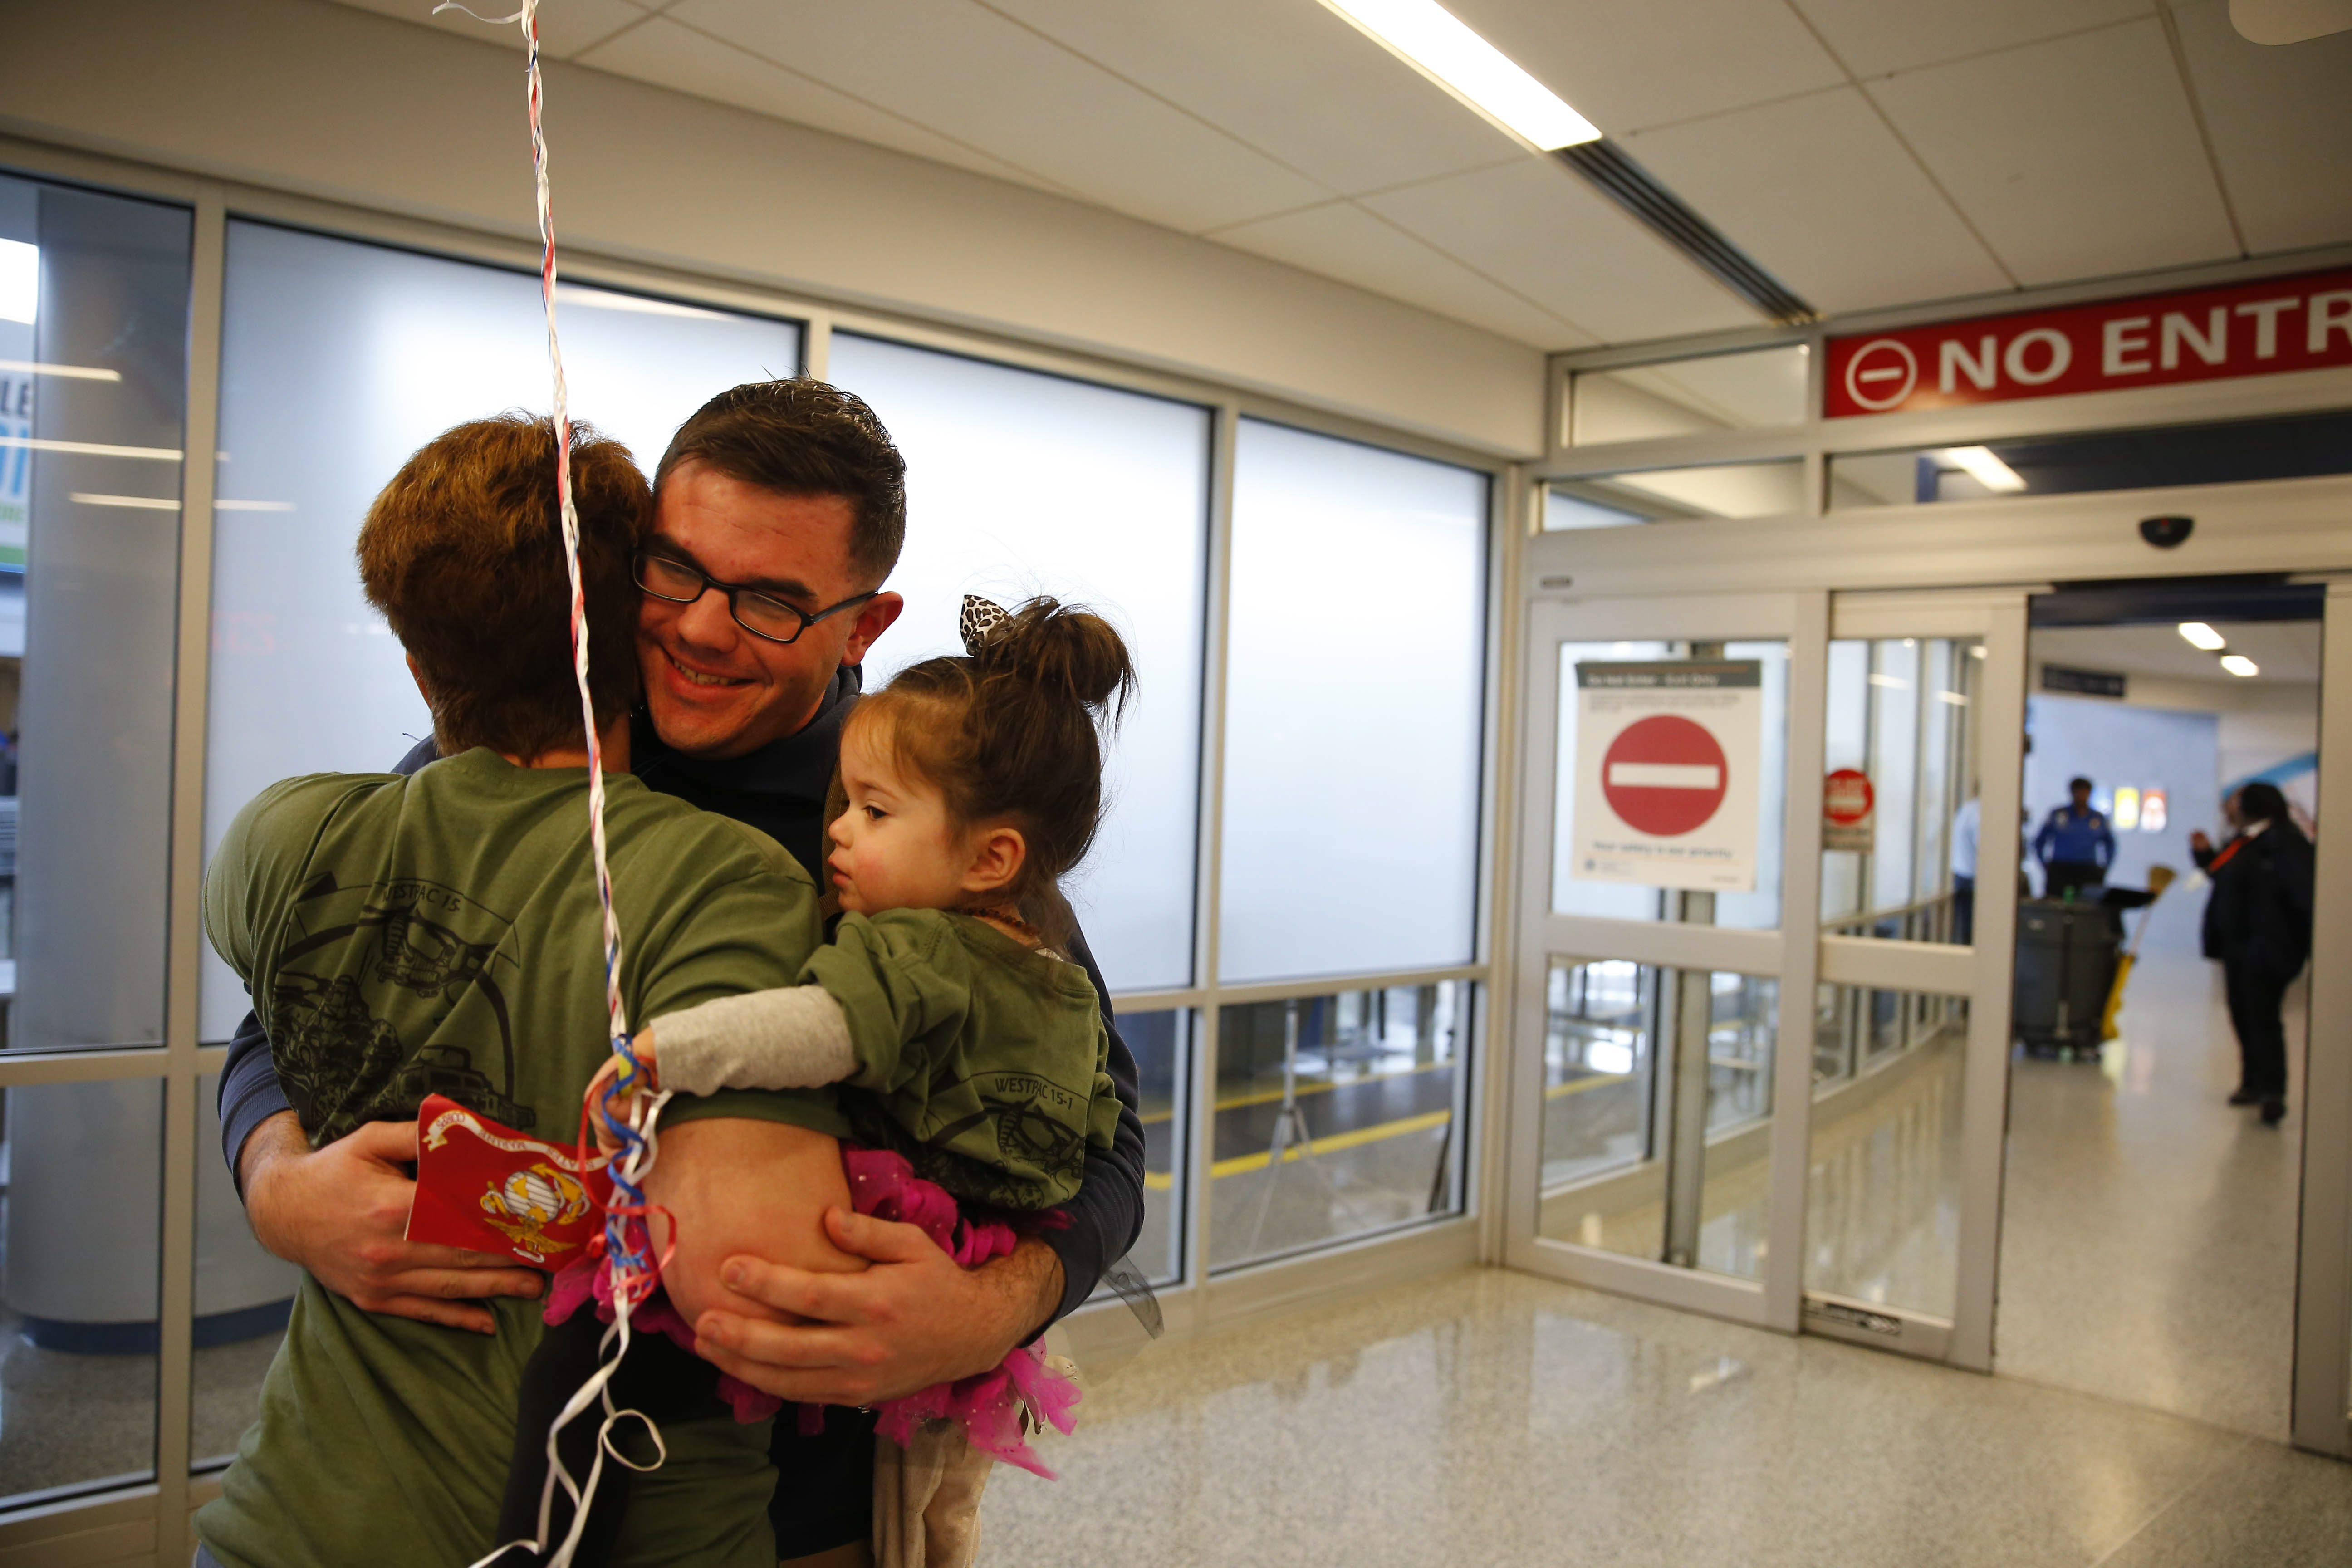 Marine Corporal Alex Hall is greeted after taking a red-eye flight by his mom Lisa Hall and niece Diem Garro at the Buffalo Niagara International Airport in Cheektowaga Wednesday, December 23, 2015. (Mark Mulville/Buffalo News)